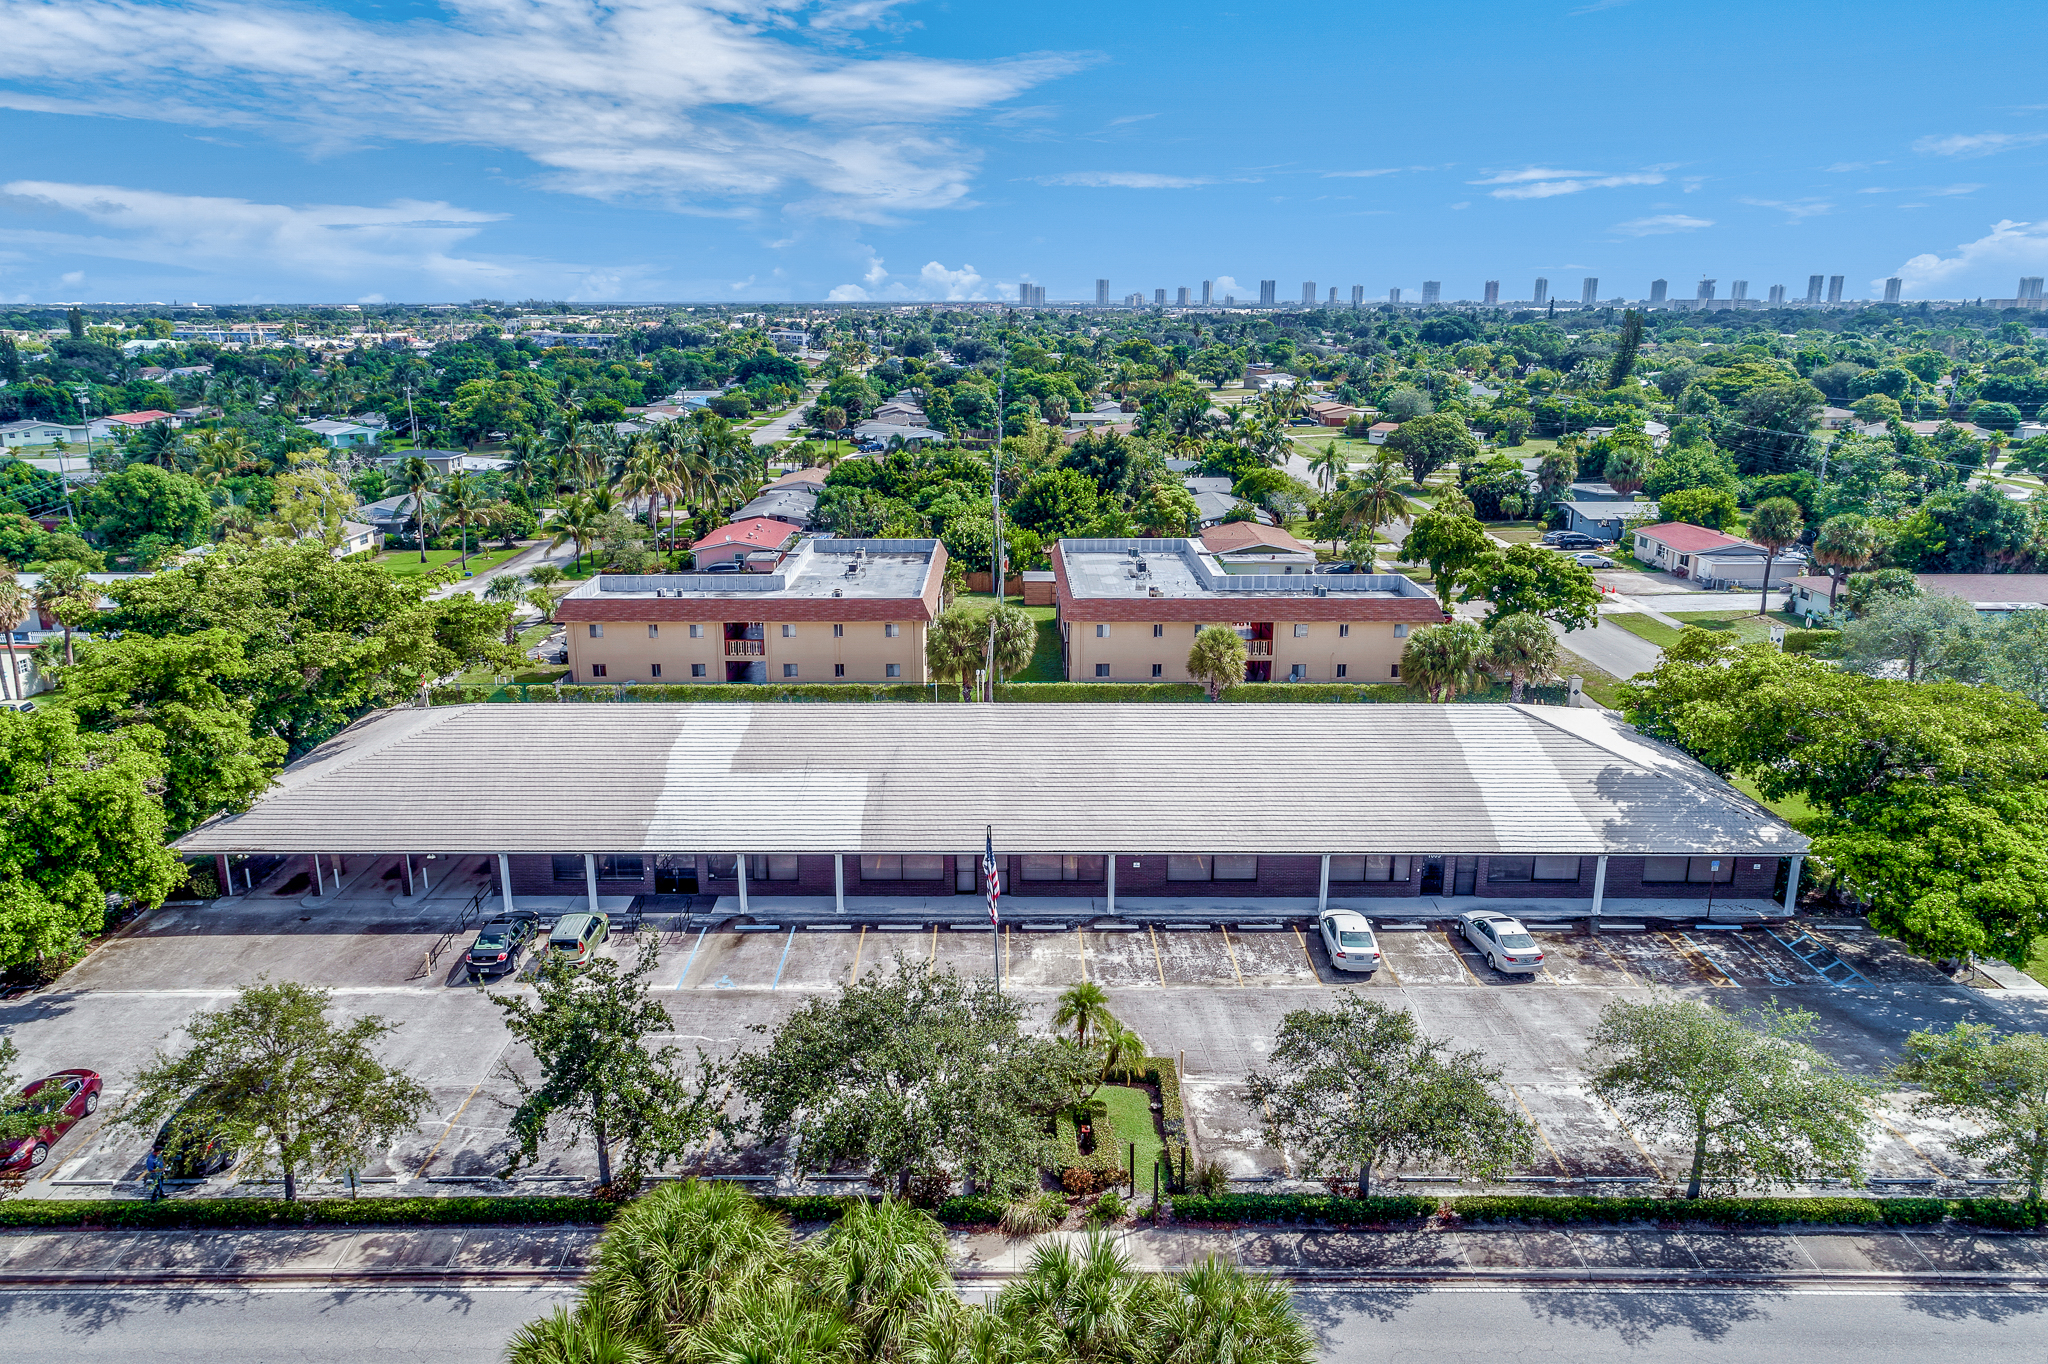 Commercial Properties For Sale In West Palm Beach Fl